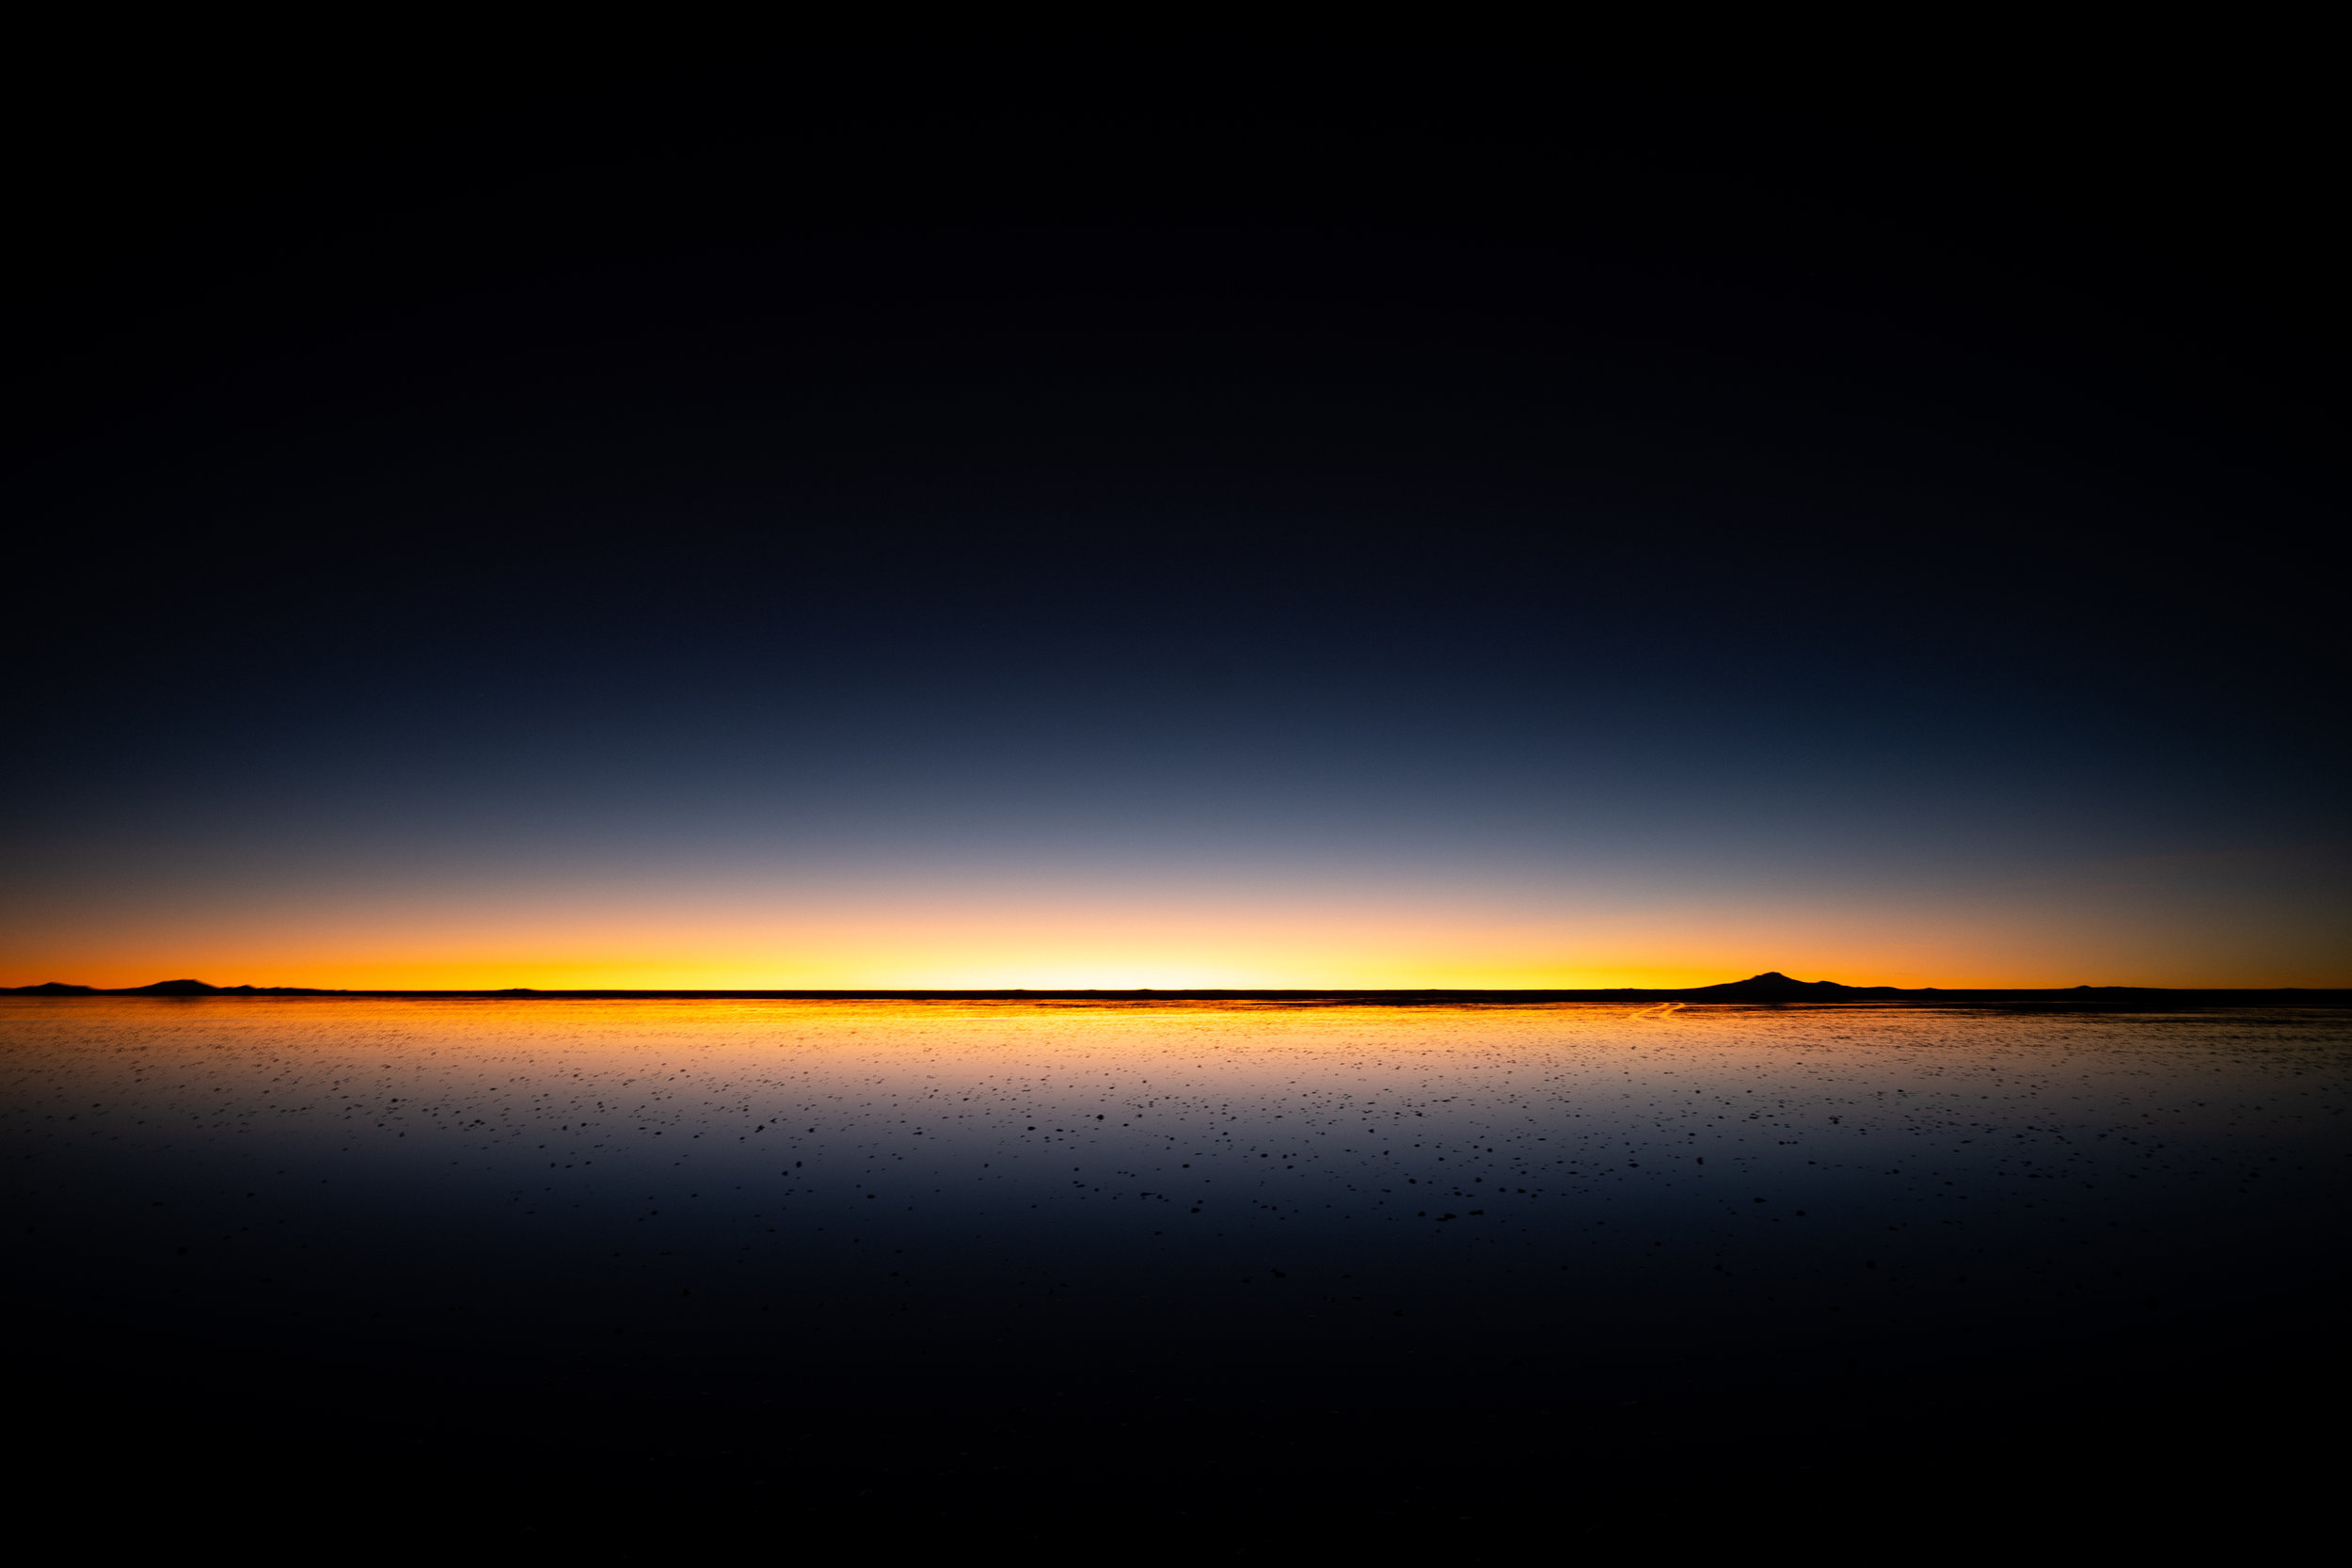 Evening Uyuni, Bolivia Leica M10-P 21mm f/3.4 Super Elmar © Keith R. Sbiral, 2019